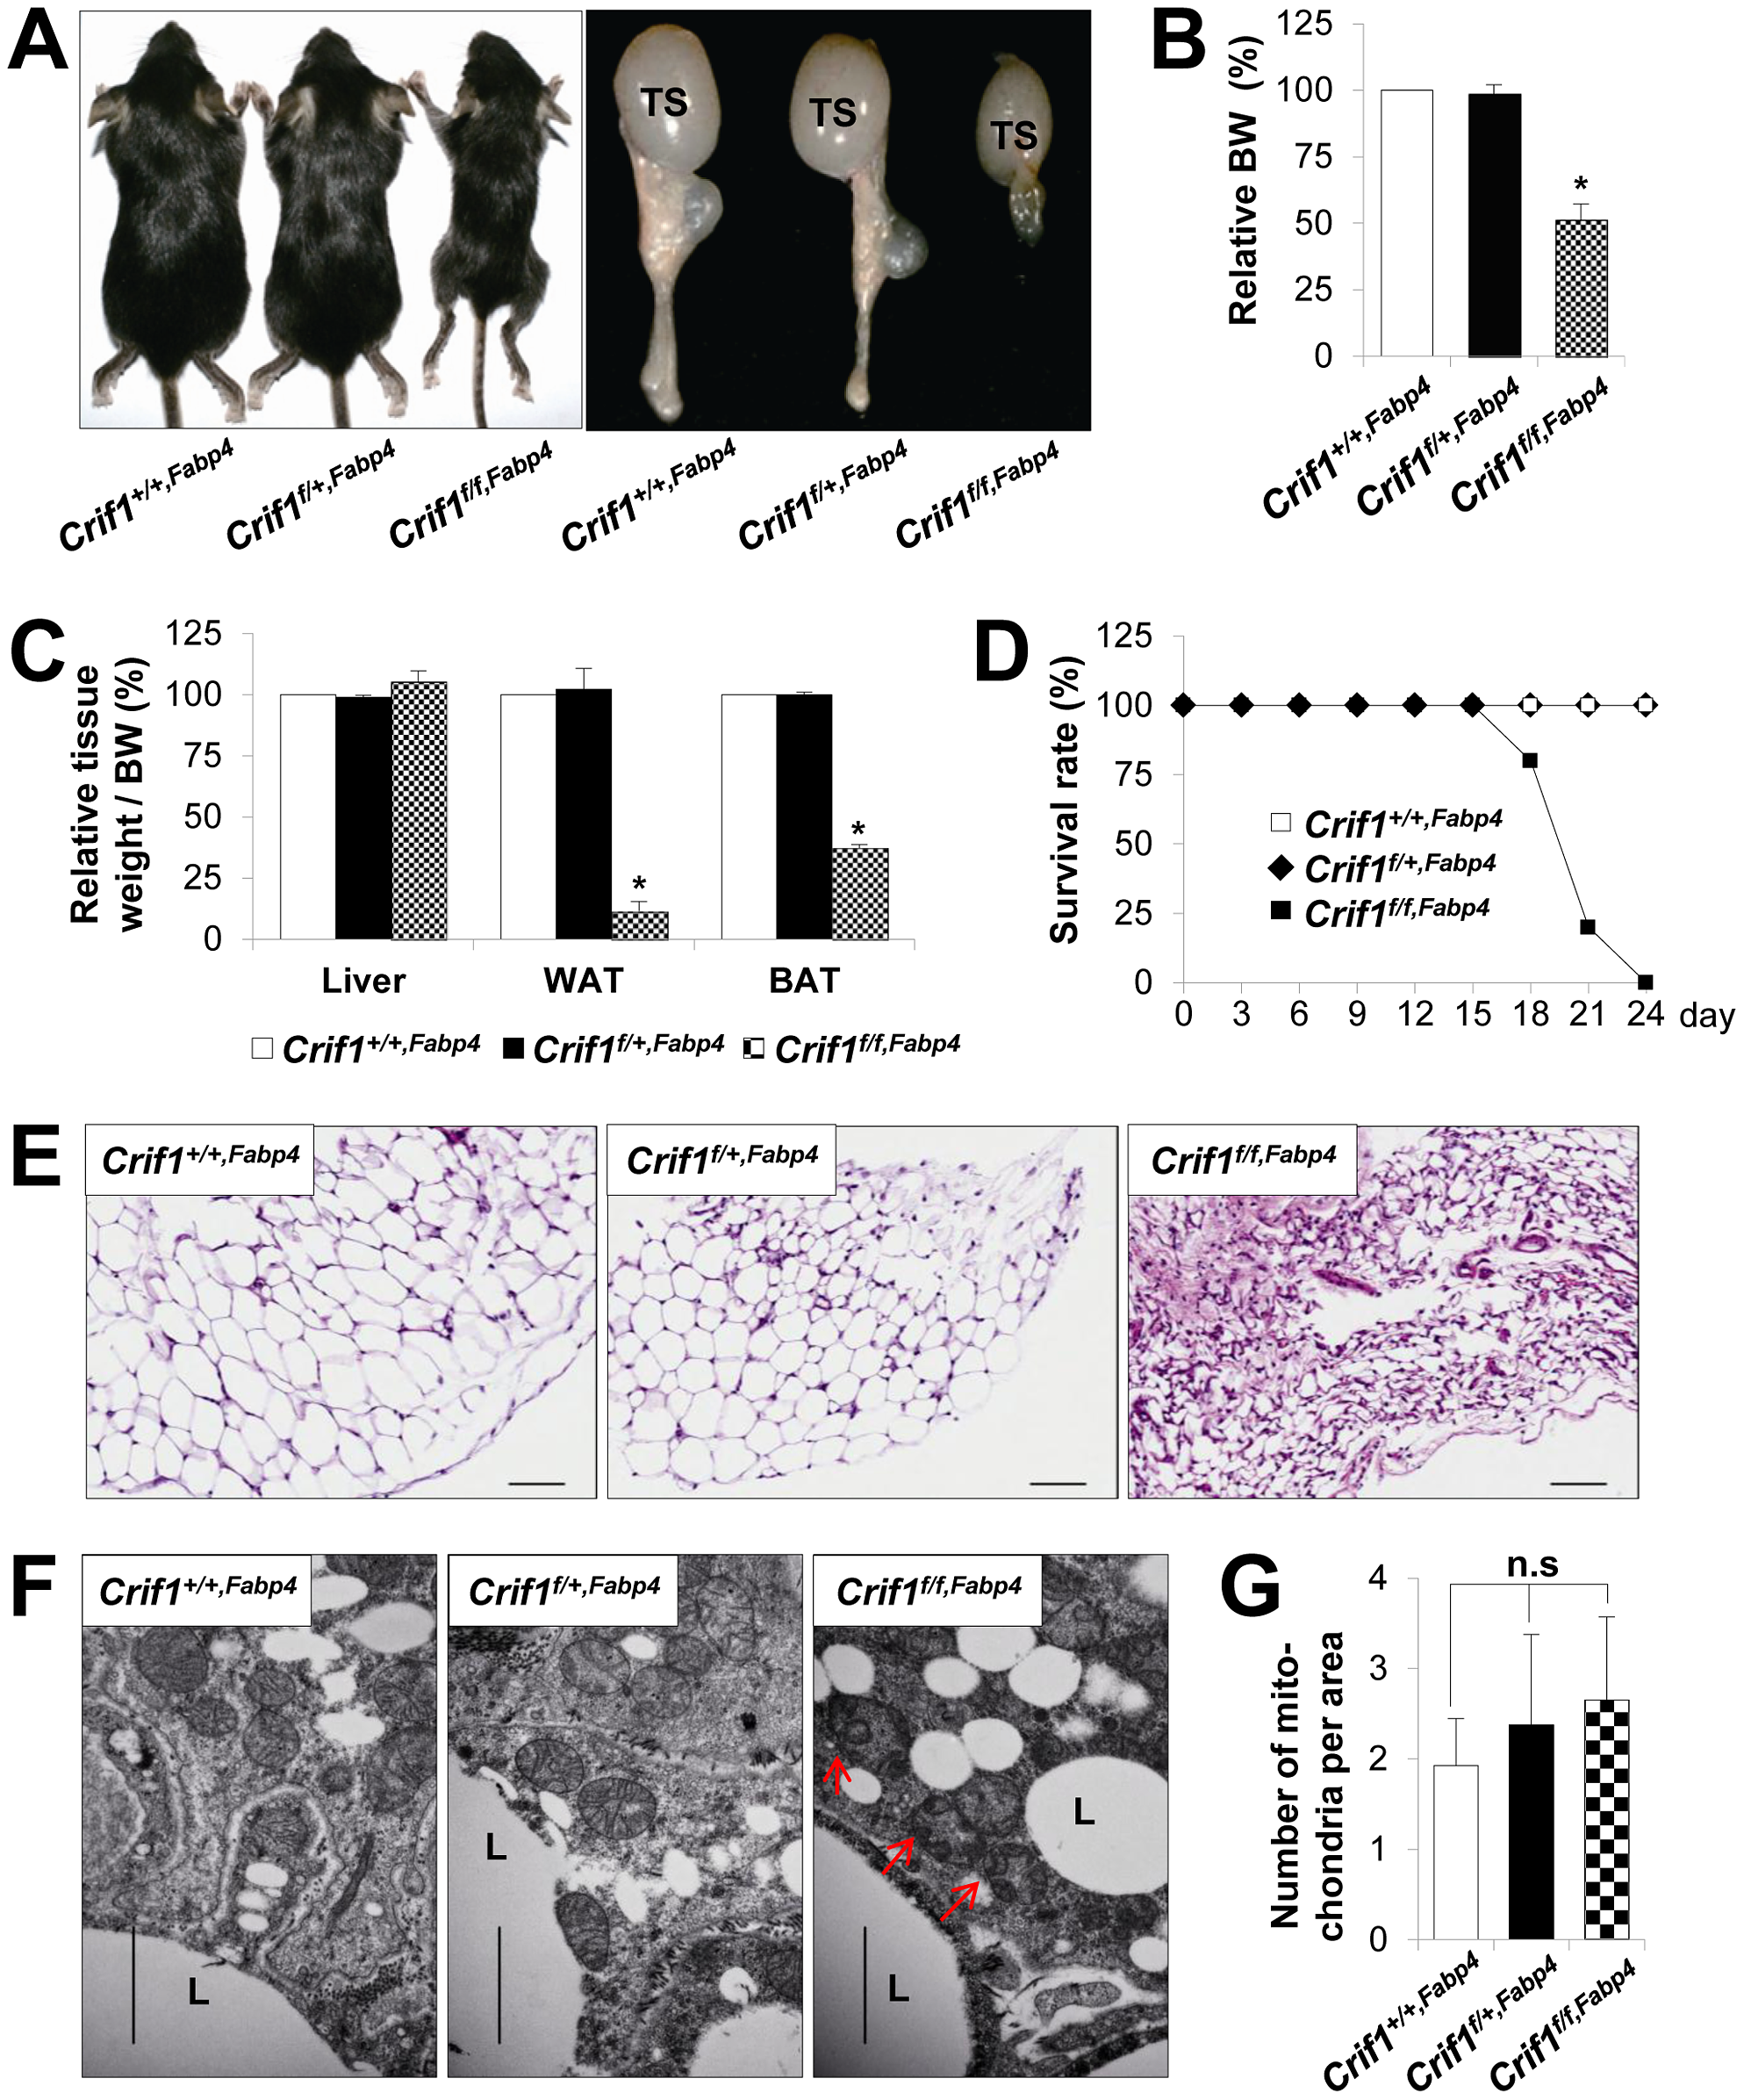 Marked failure of adipose tissue development in <i>Crif1<sup>f/f,Fabp4</sup></i> mice.